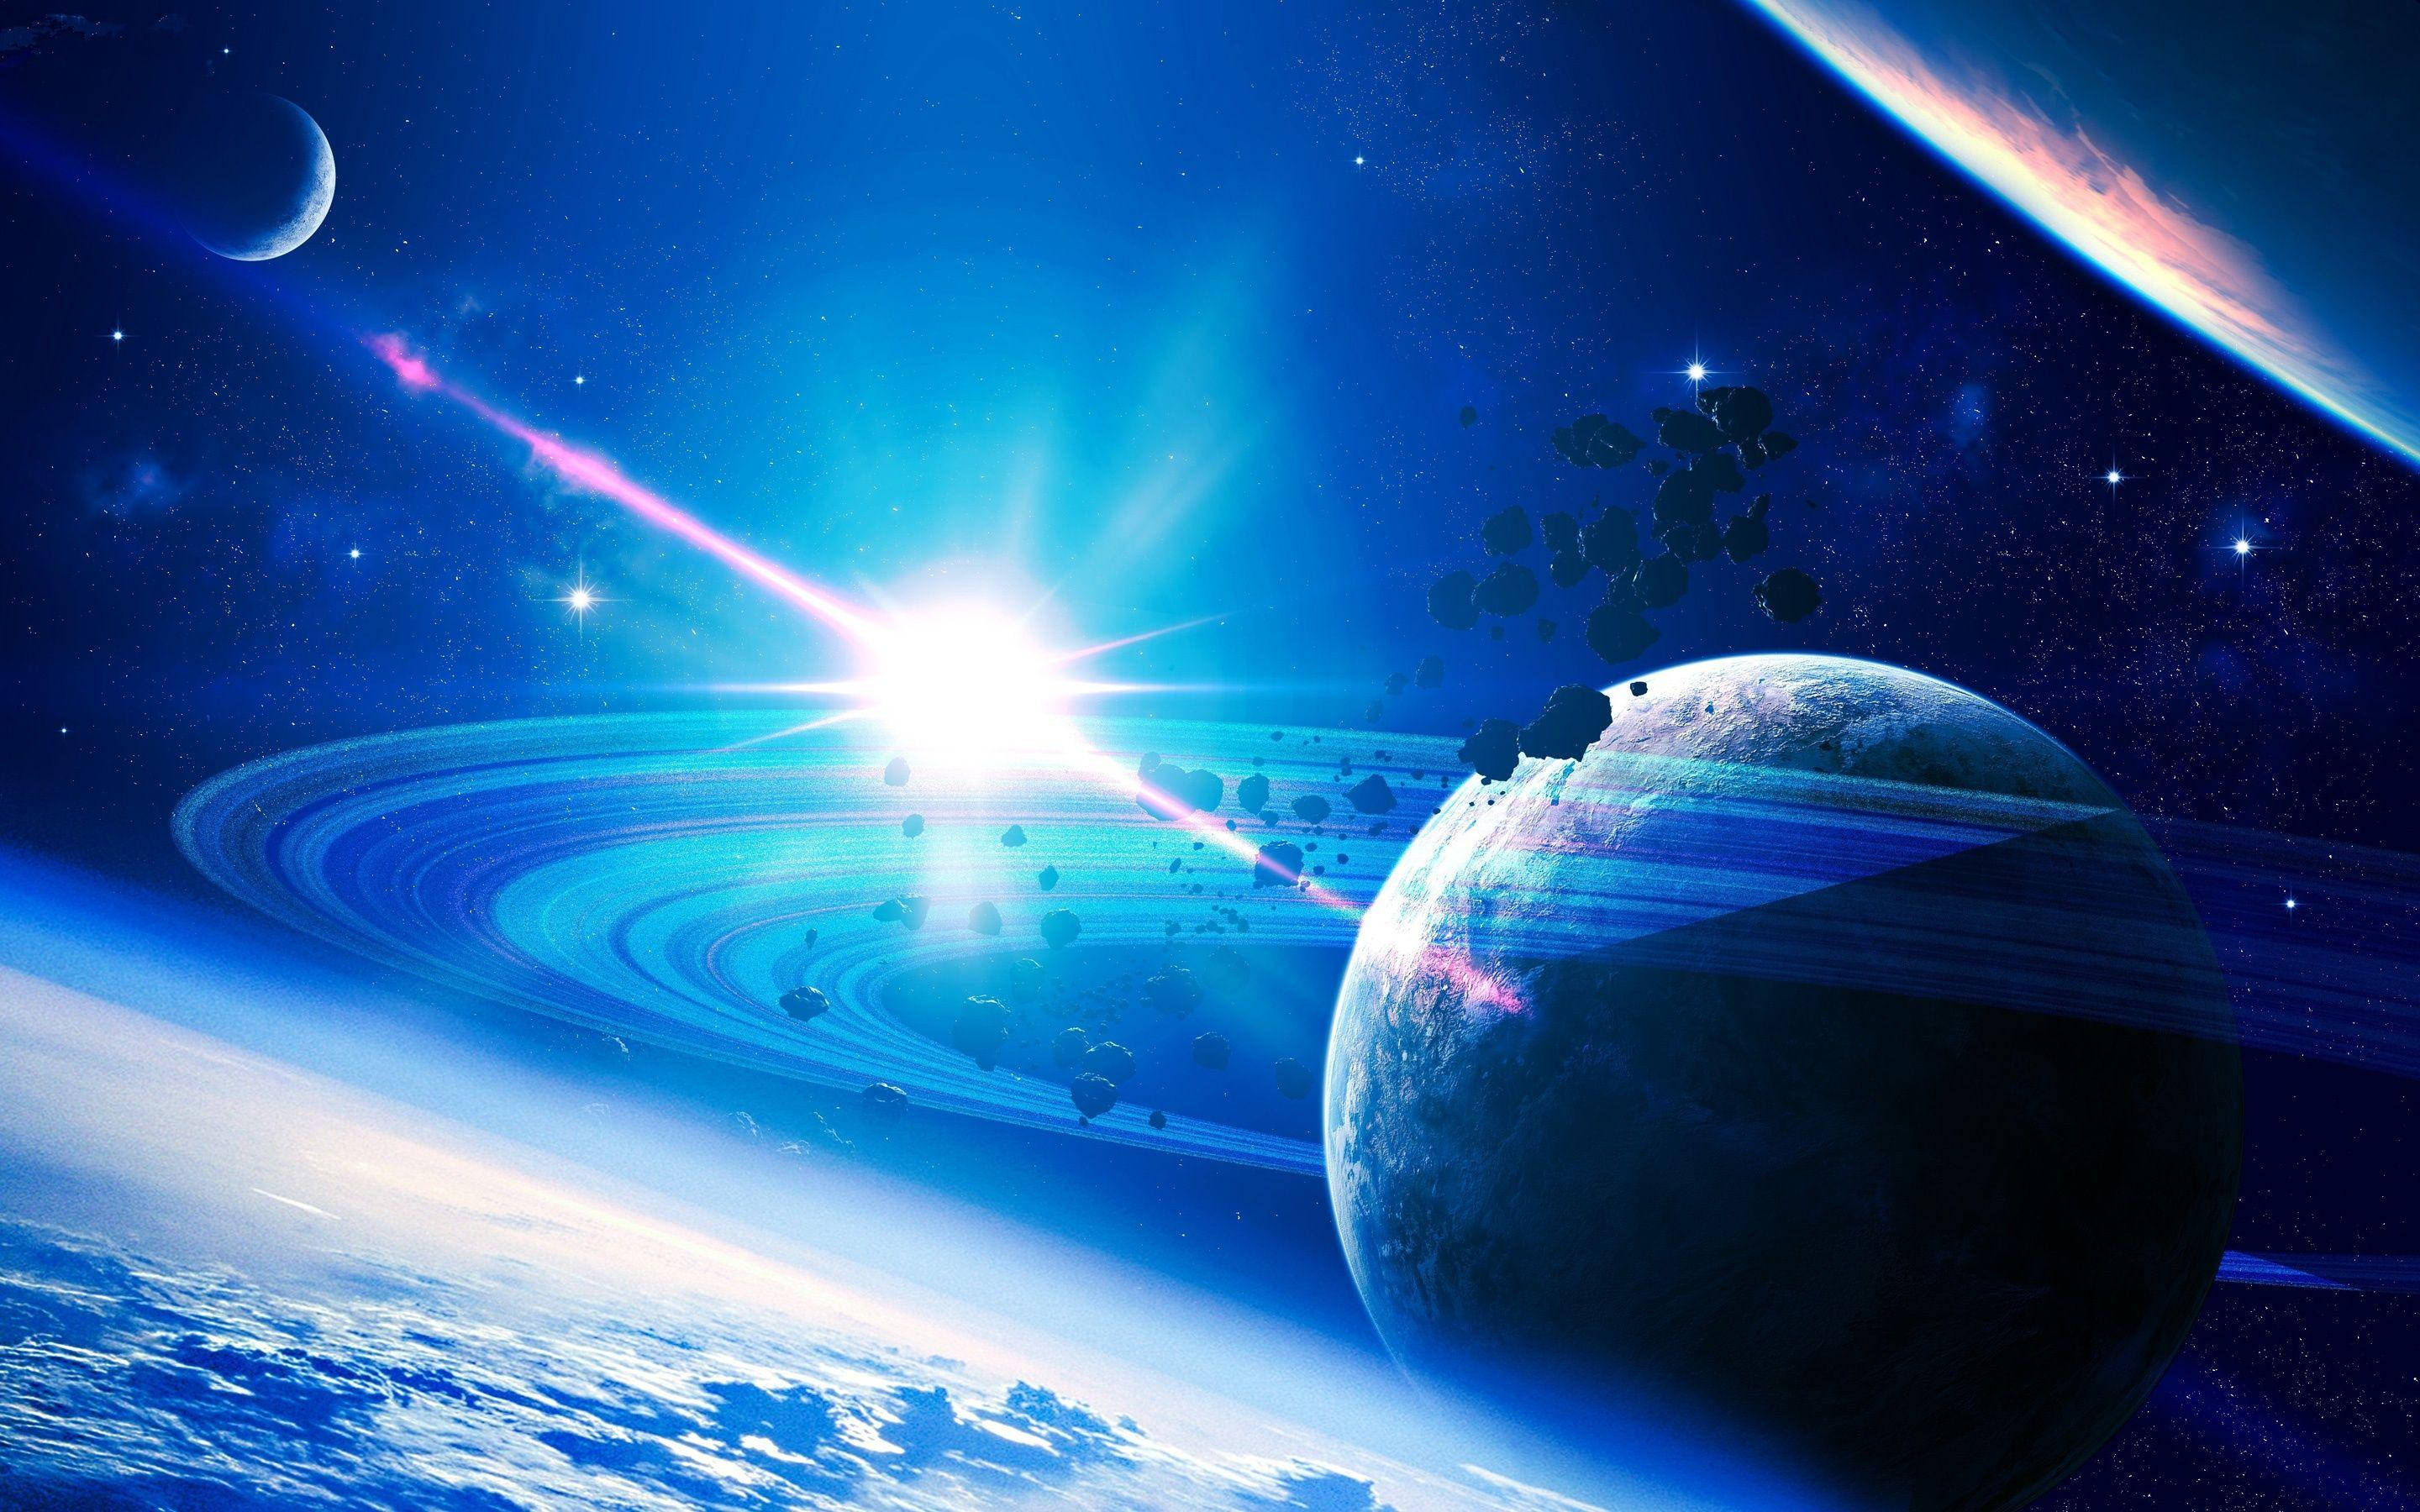 Blue Star In Space Wallpapers Wallpaper Cave